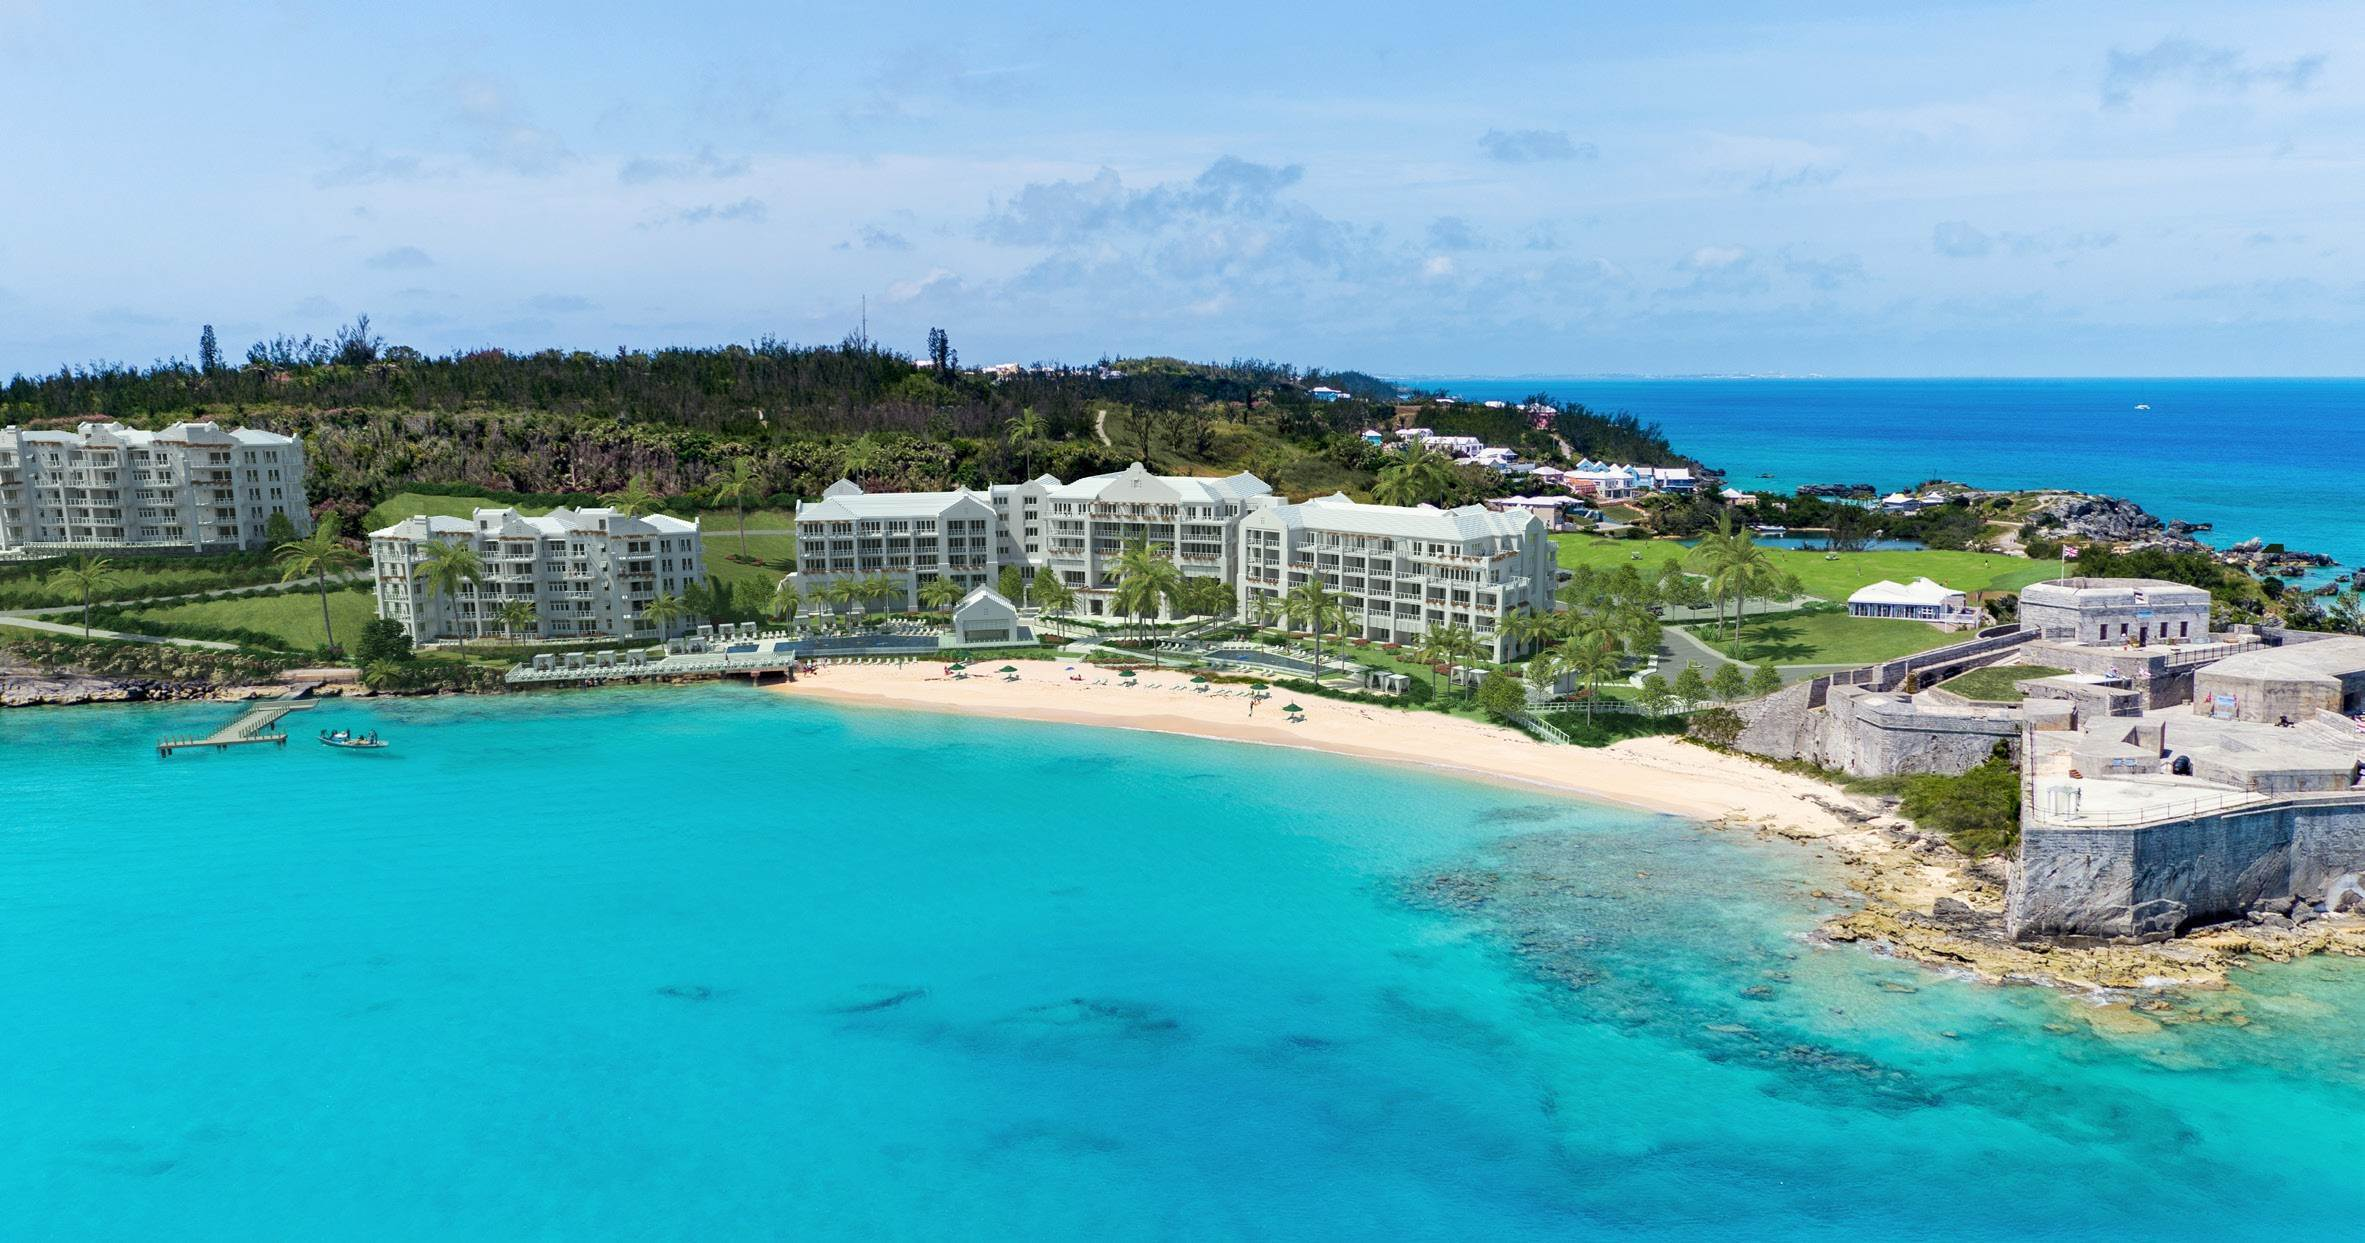 4. Condo / Townhouse / Flat for Sale at St. Regis Bermuda Residences - Gates Bay 4B St. Catherine's Beach St Georges Parish, GE03 Bermuda